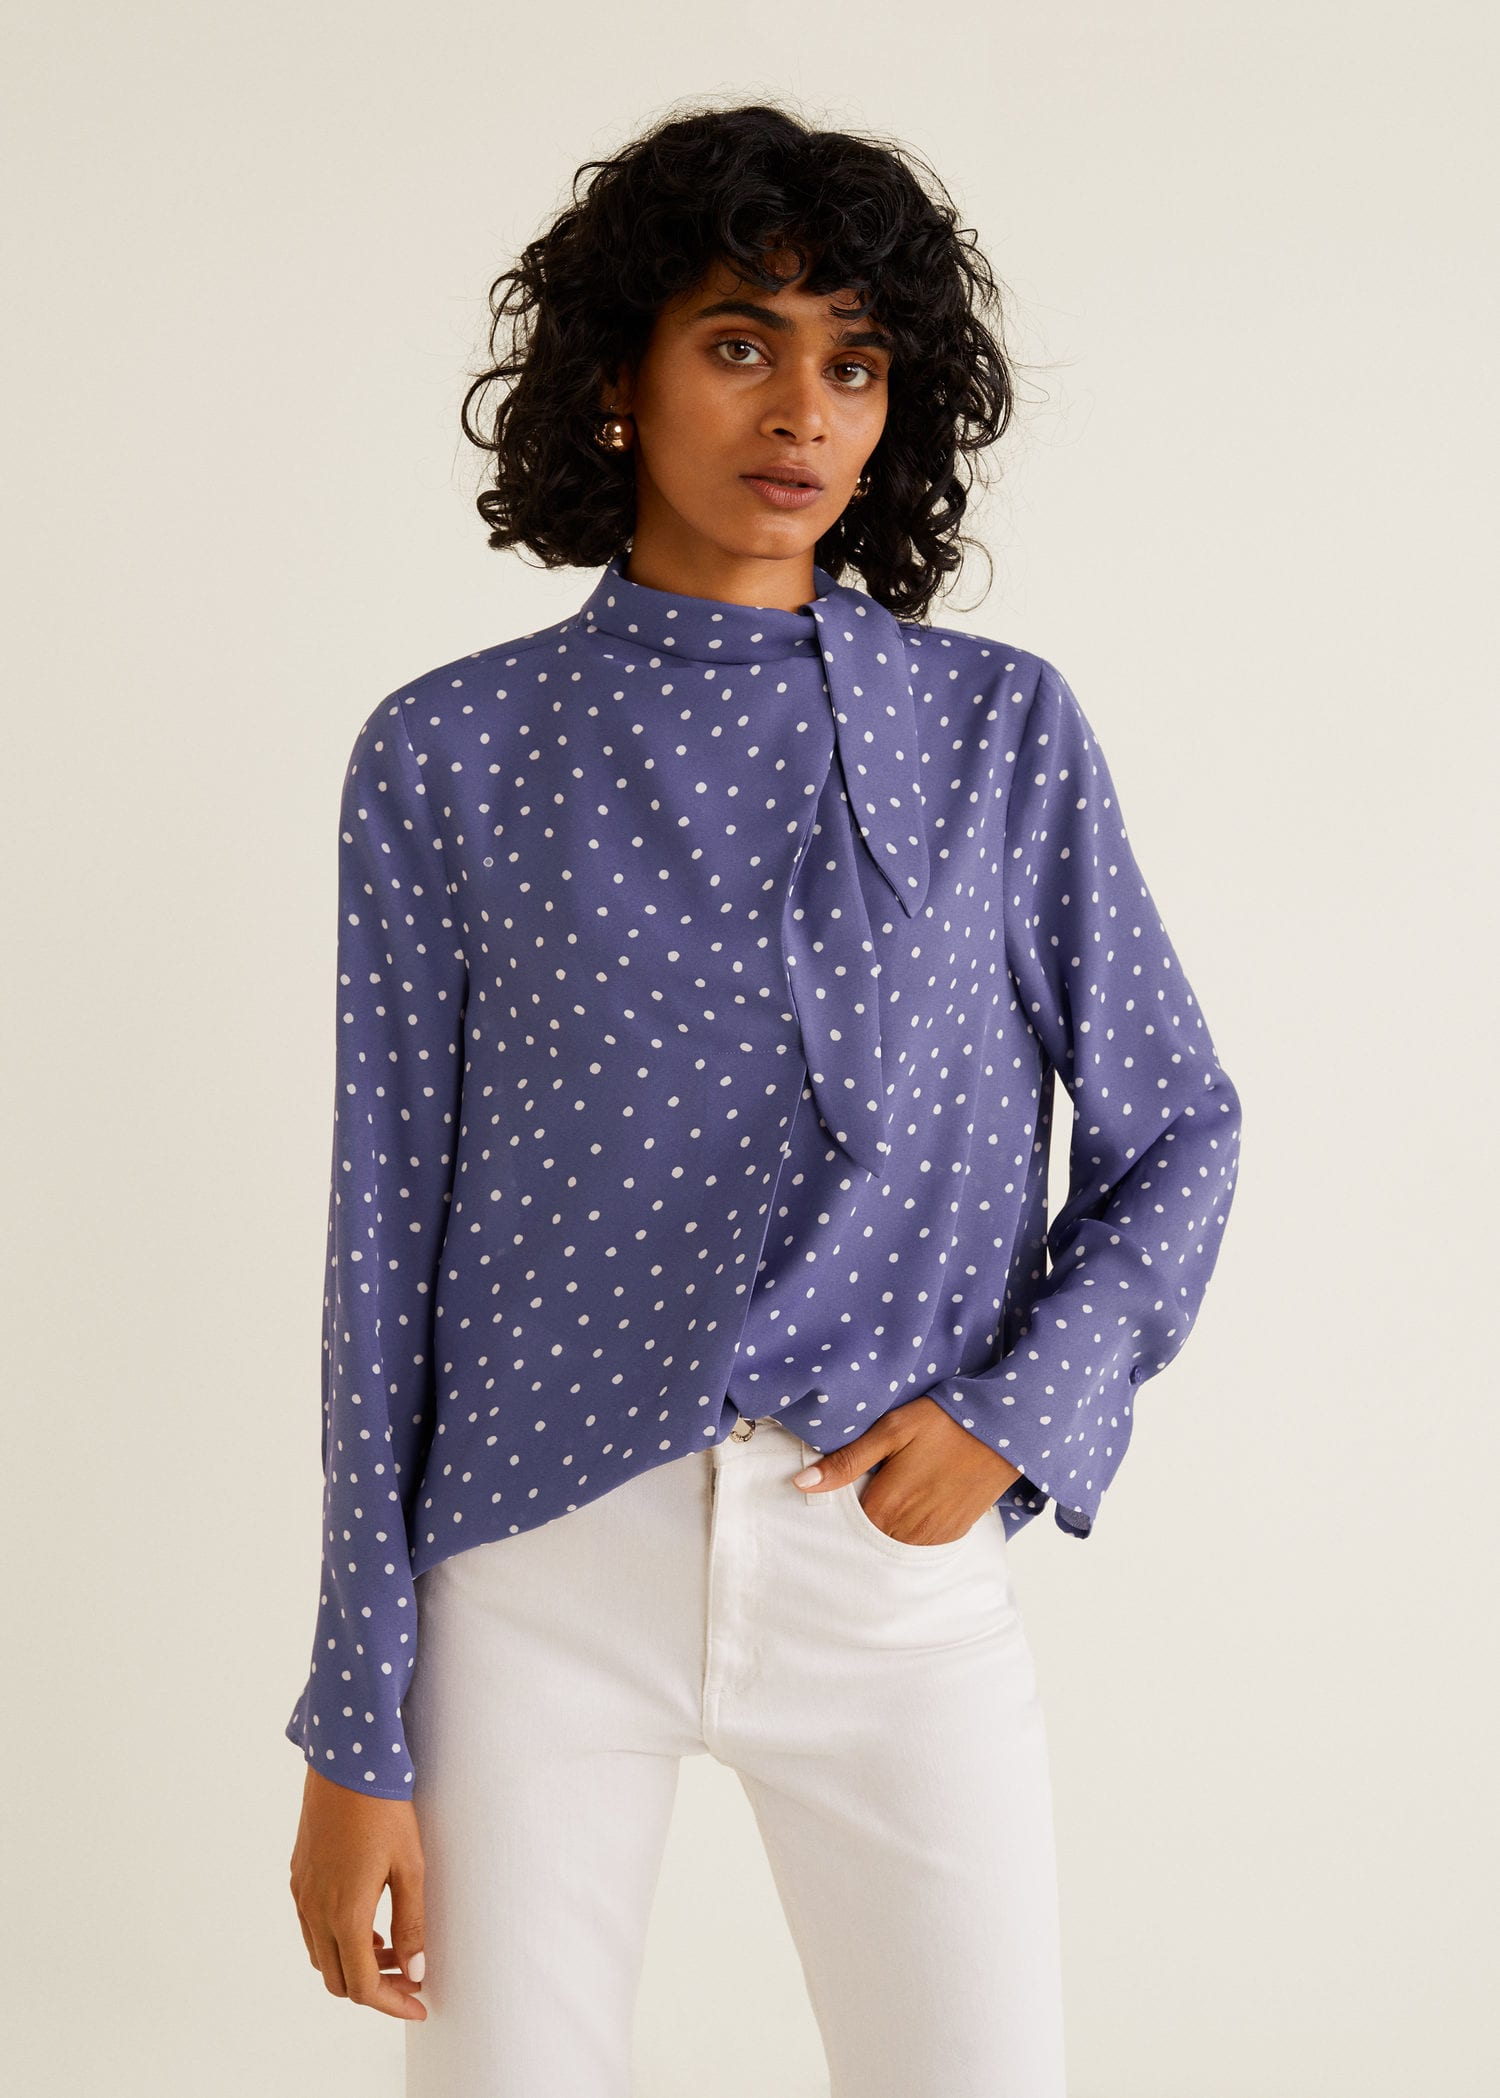 Tie Neck Blouse Polka Dot Blue